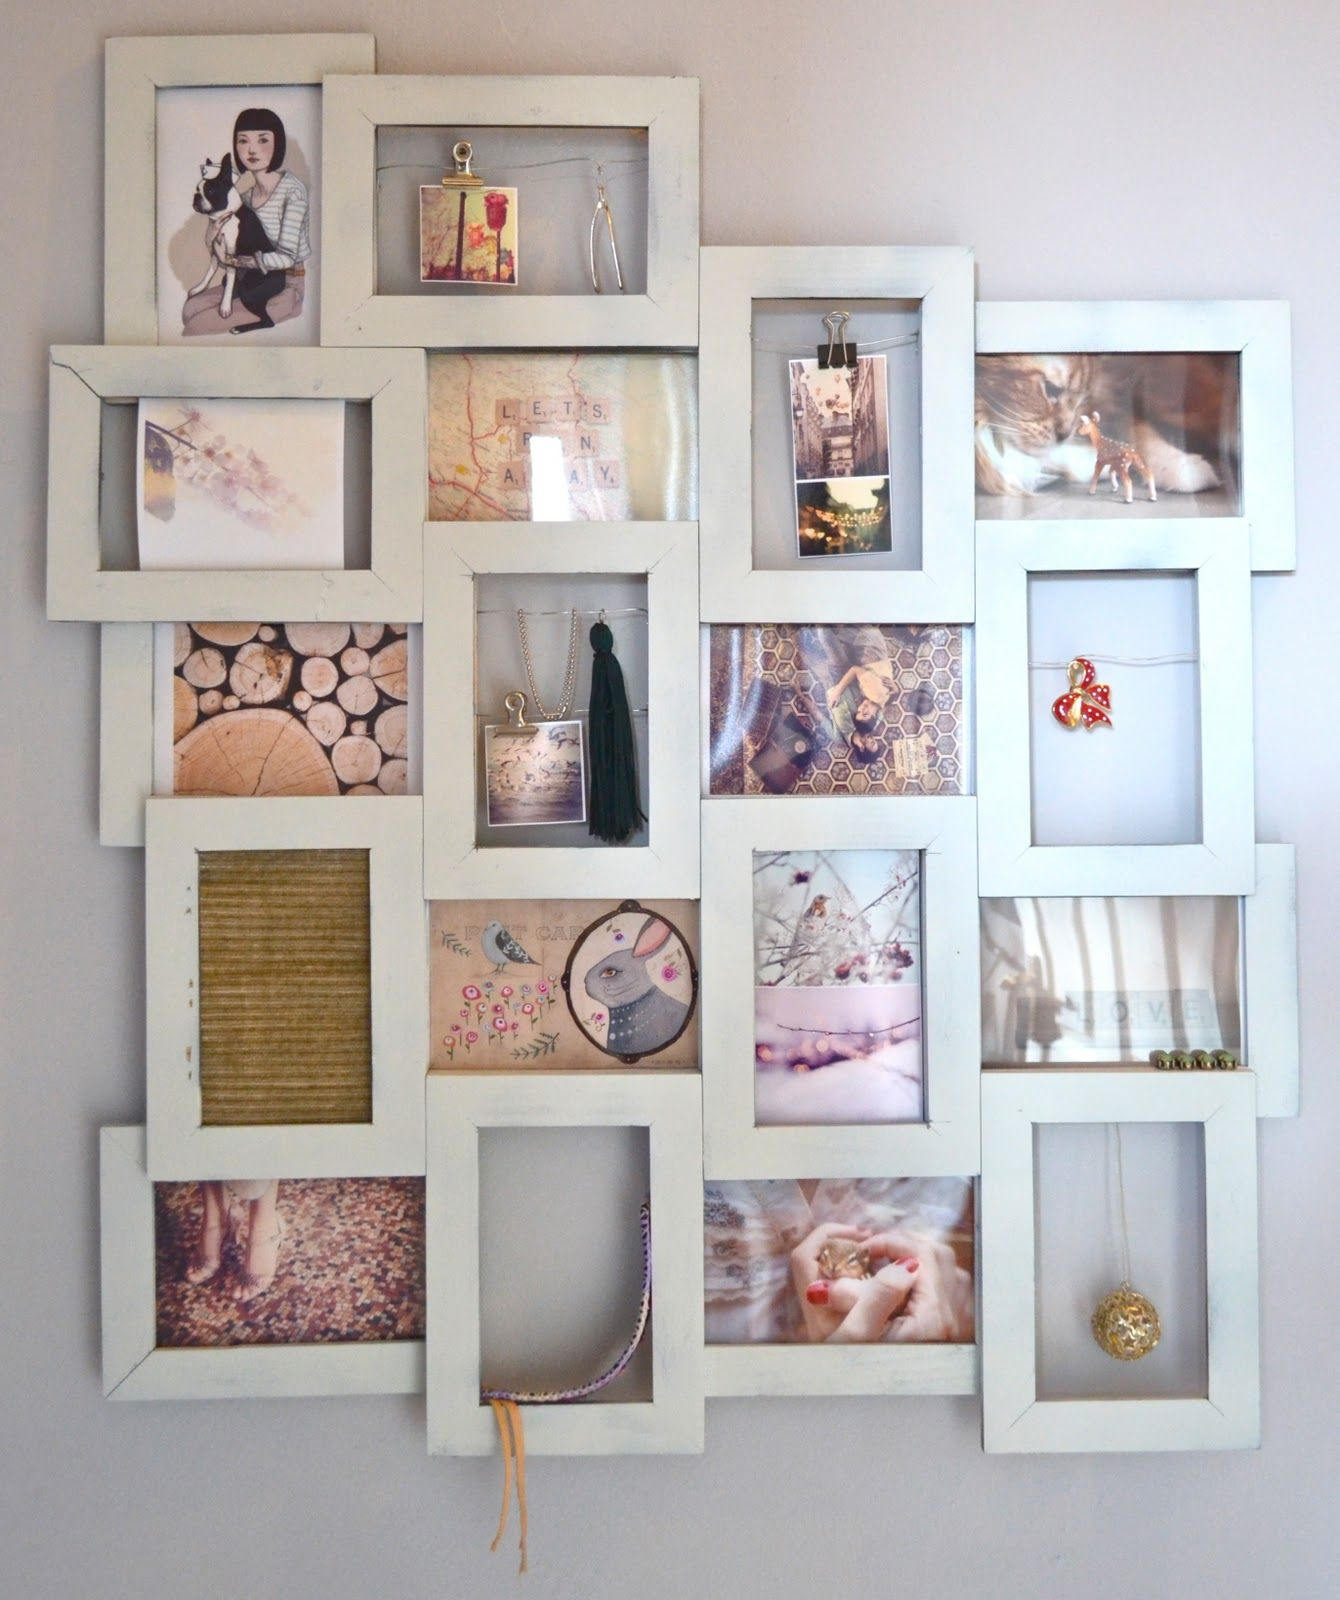 12 inspirational diy picture frame ideas making yours like never 31 diy picture frame ideas for personalized and original decors jeuxipadfo Image collections